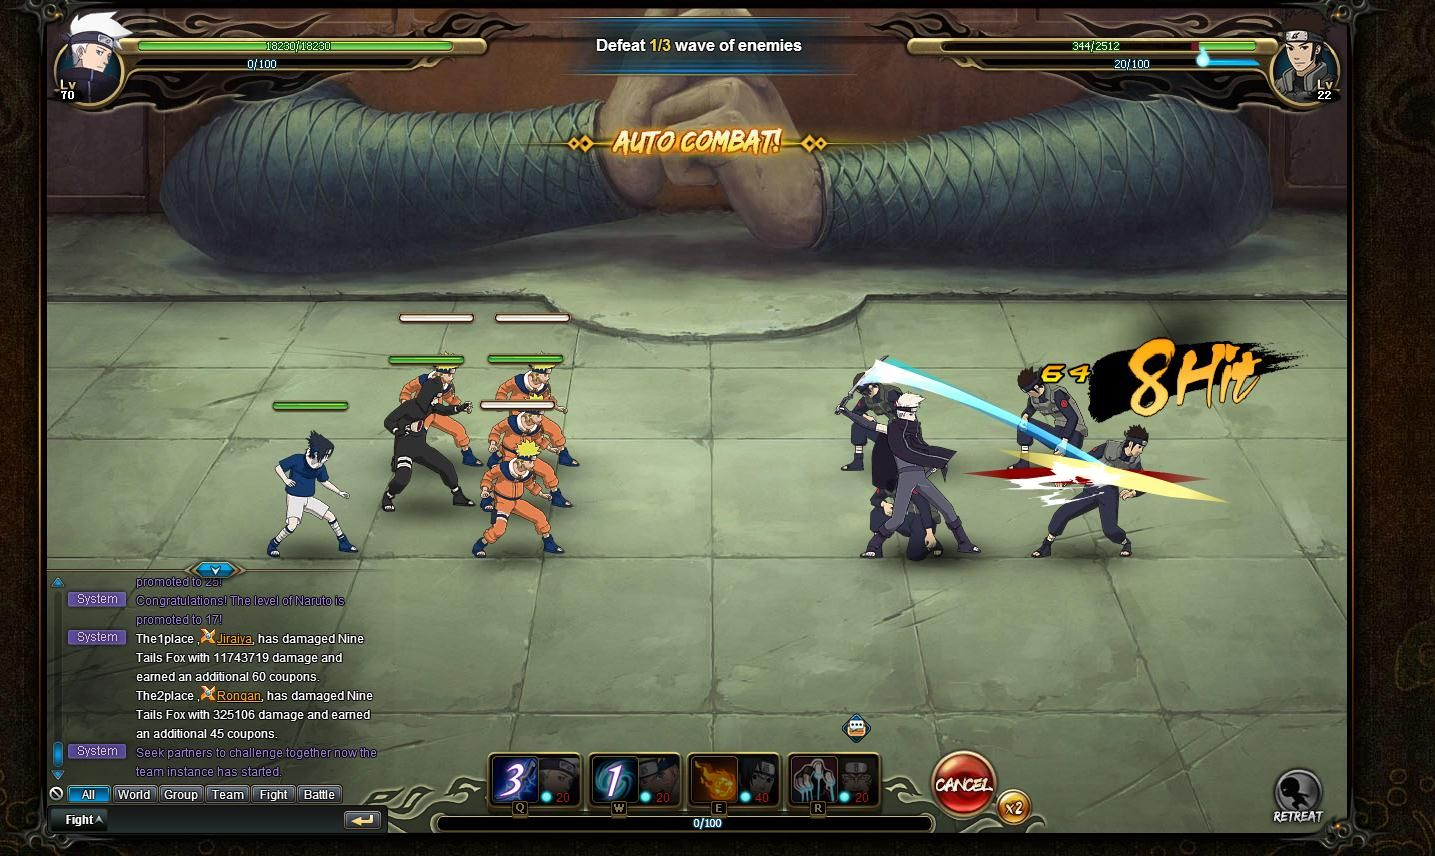 Gamenaruto Mmorpg Naruto Mmorpgonlinegame The Must Play Online Mmorpg Of 2016 Officially Licensed By Namco Banda Mmorpg Games Naruto Games Naruto English